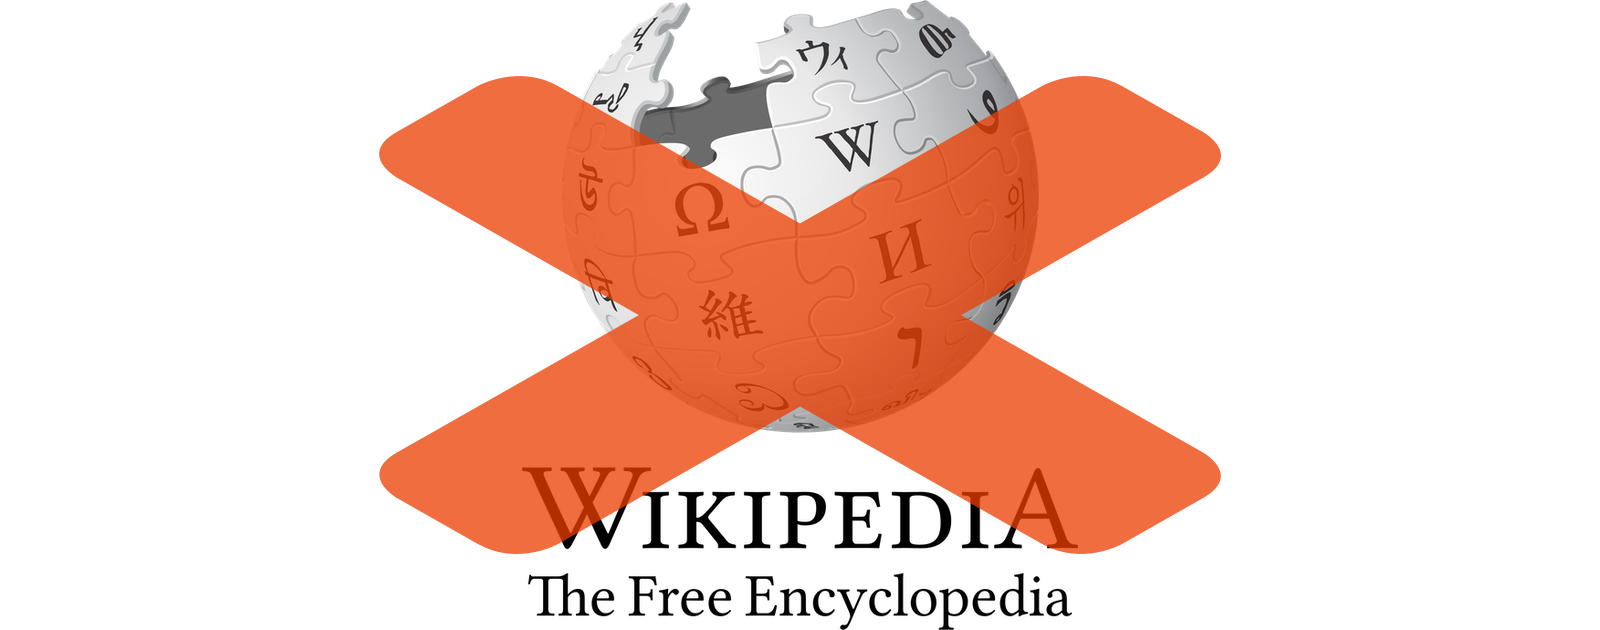 Italy Wikipedia Shuts Down in Protest of EU Copyright Law